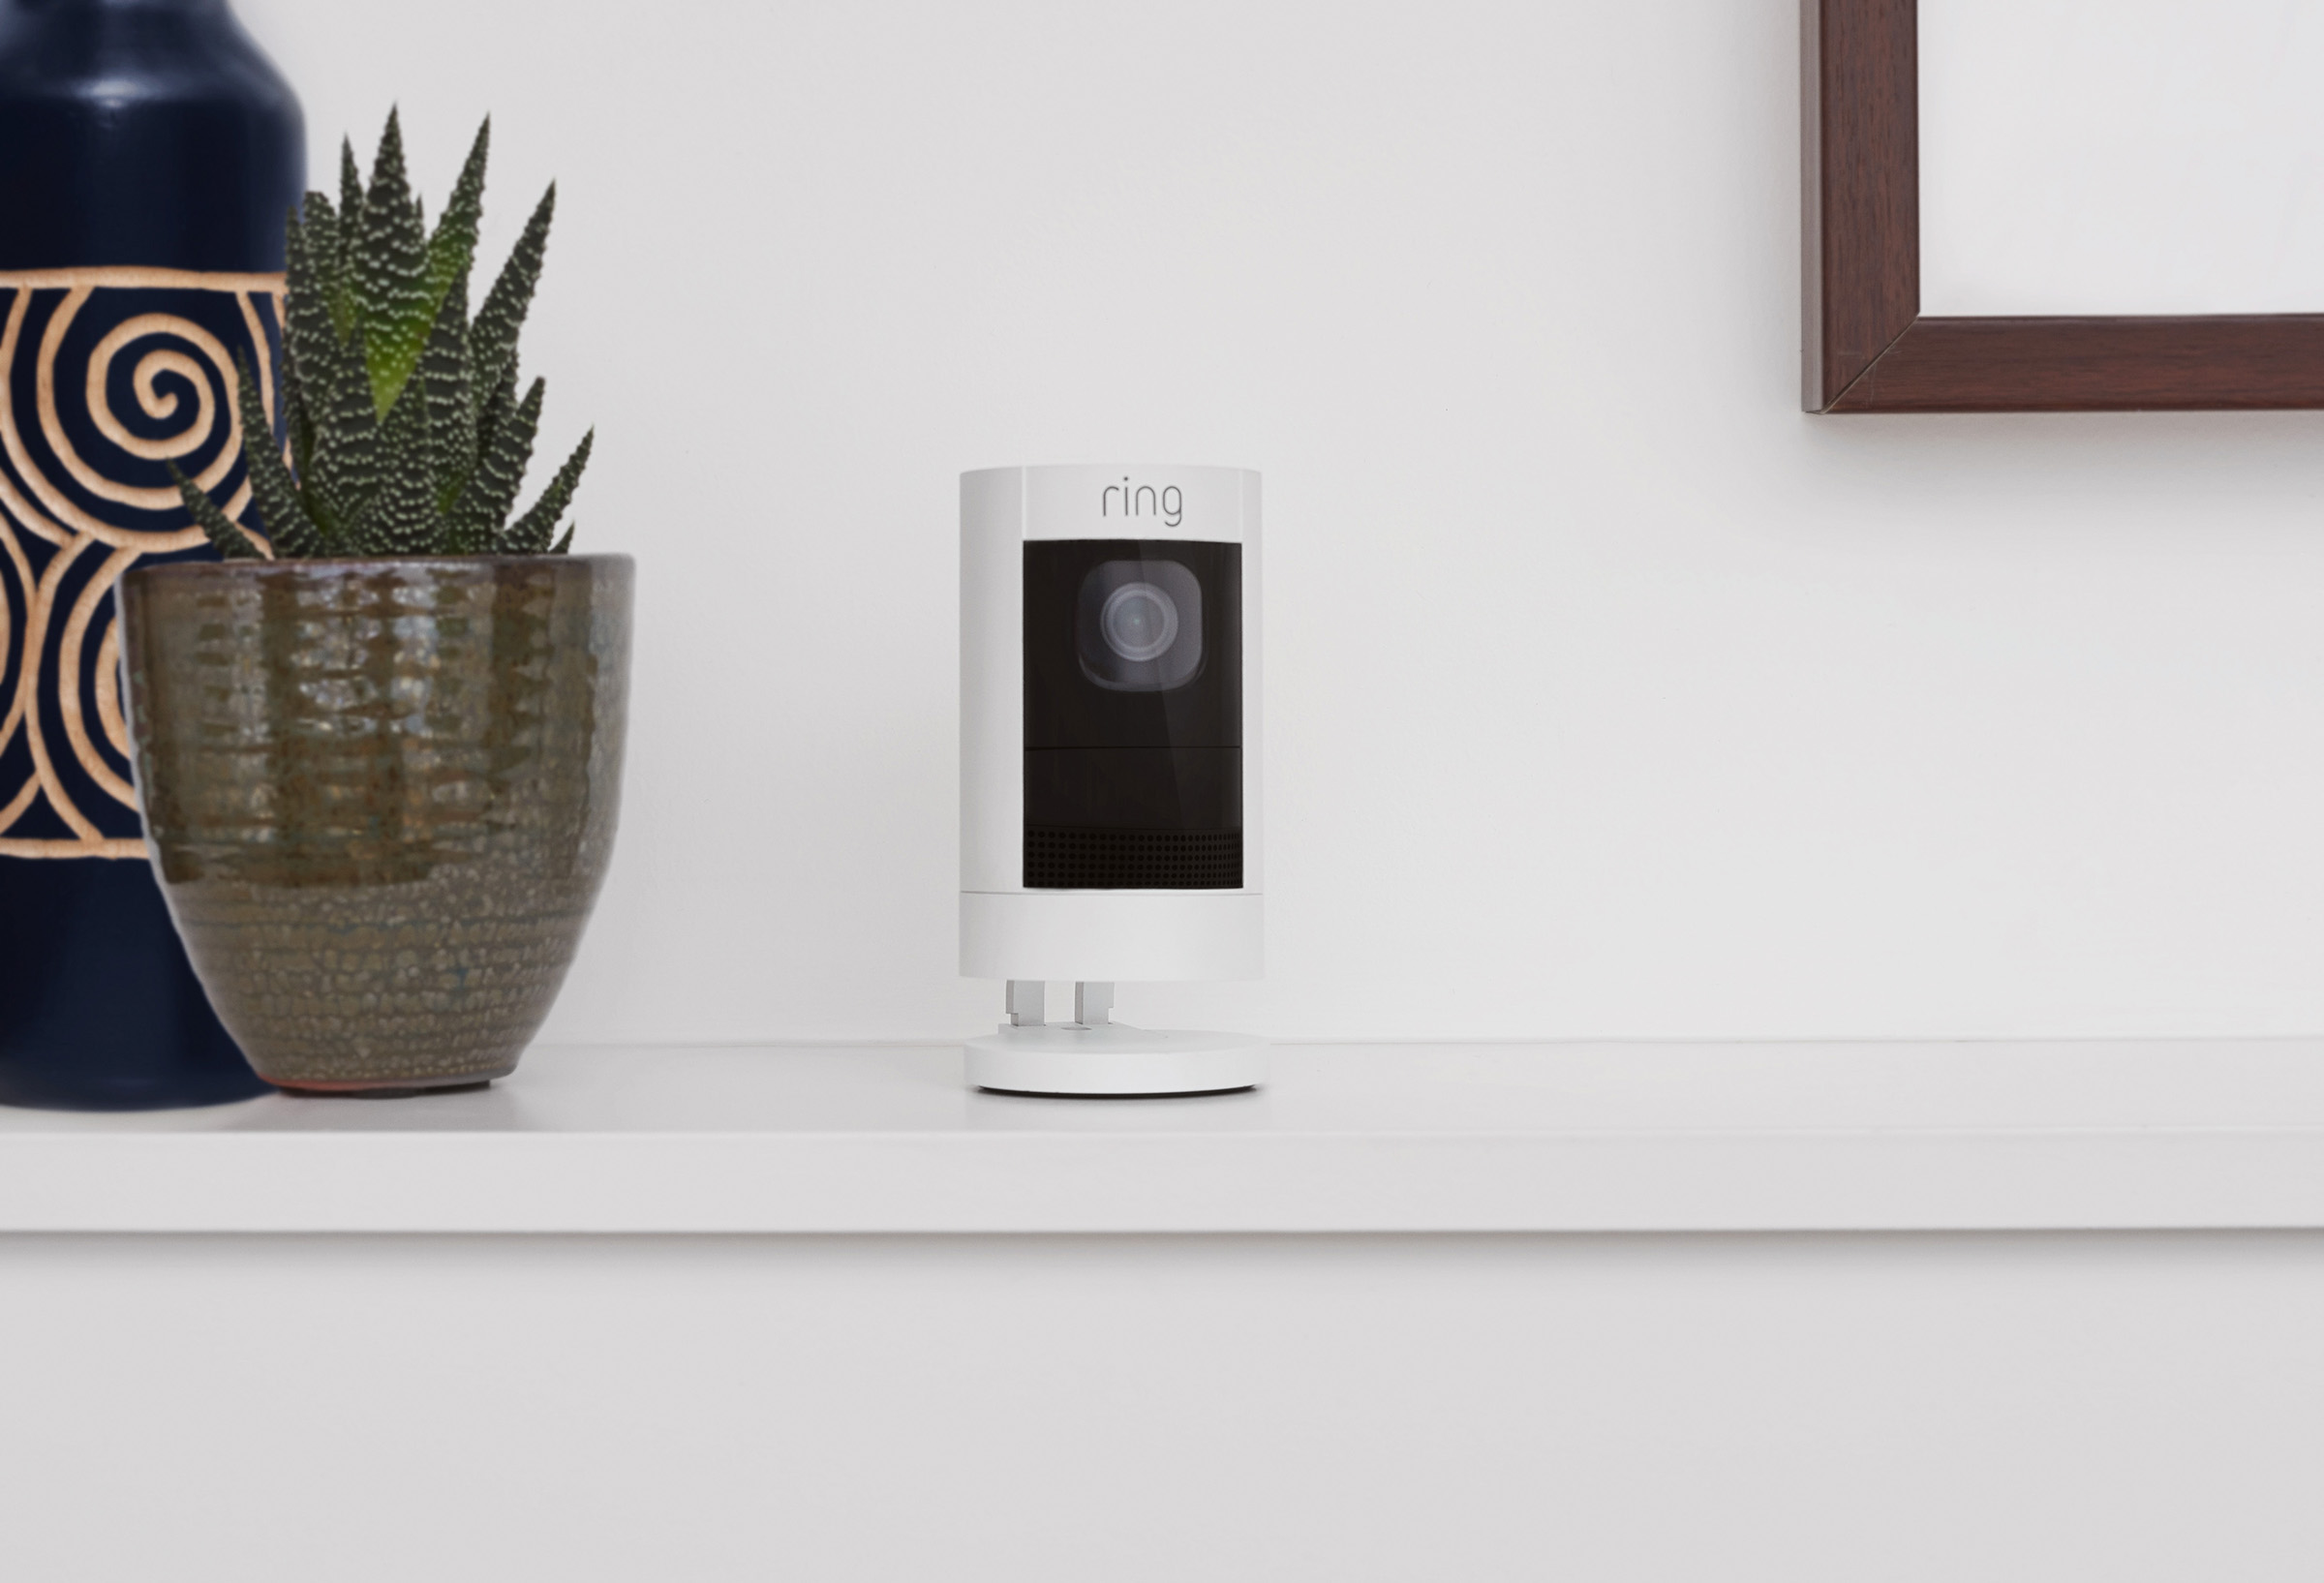 Ring From Video Doorbells To Smart Home Lighting The Verge